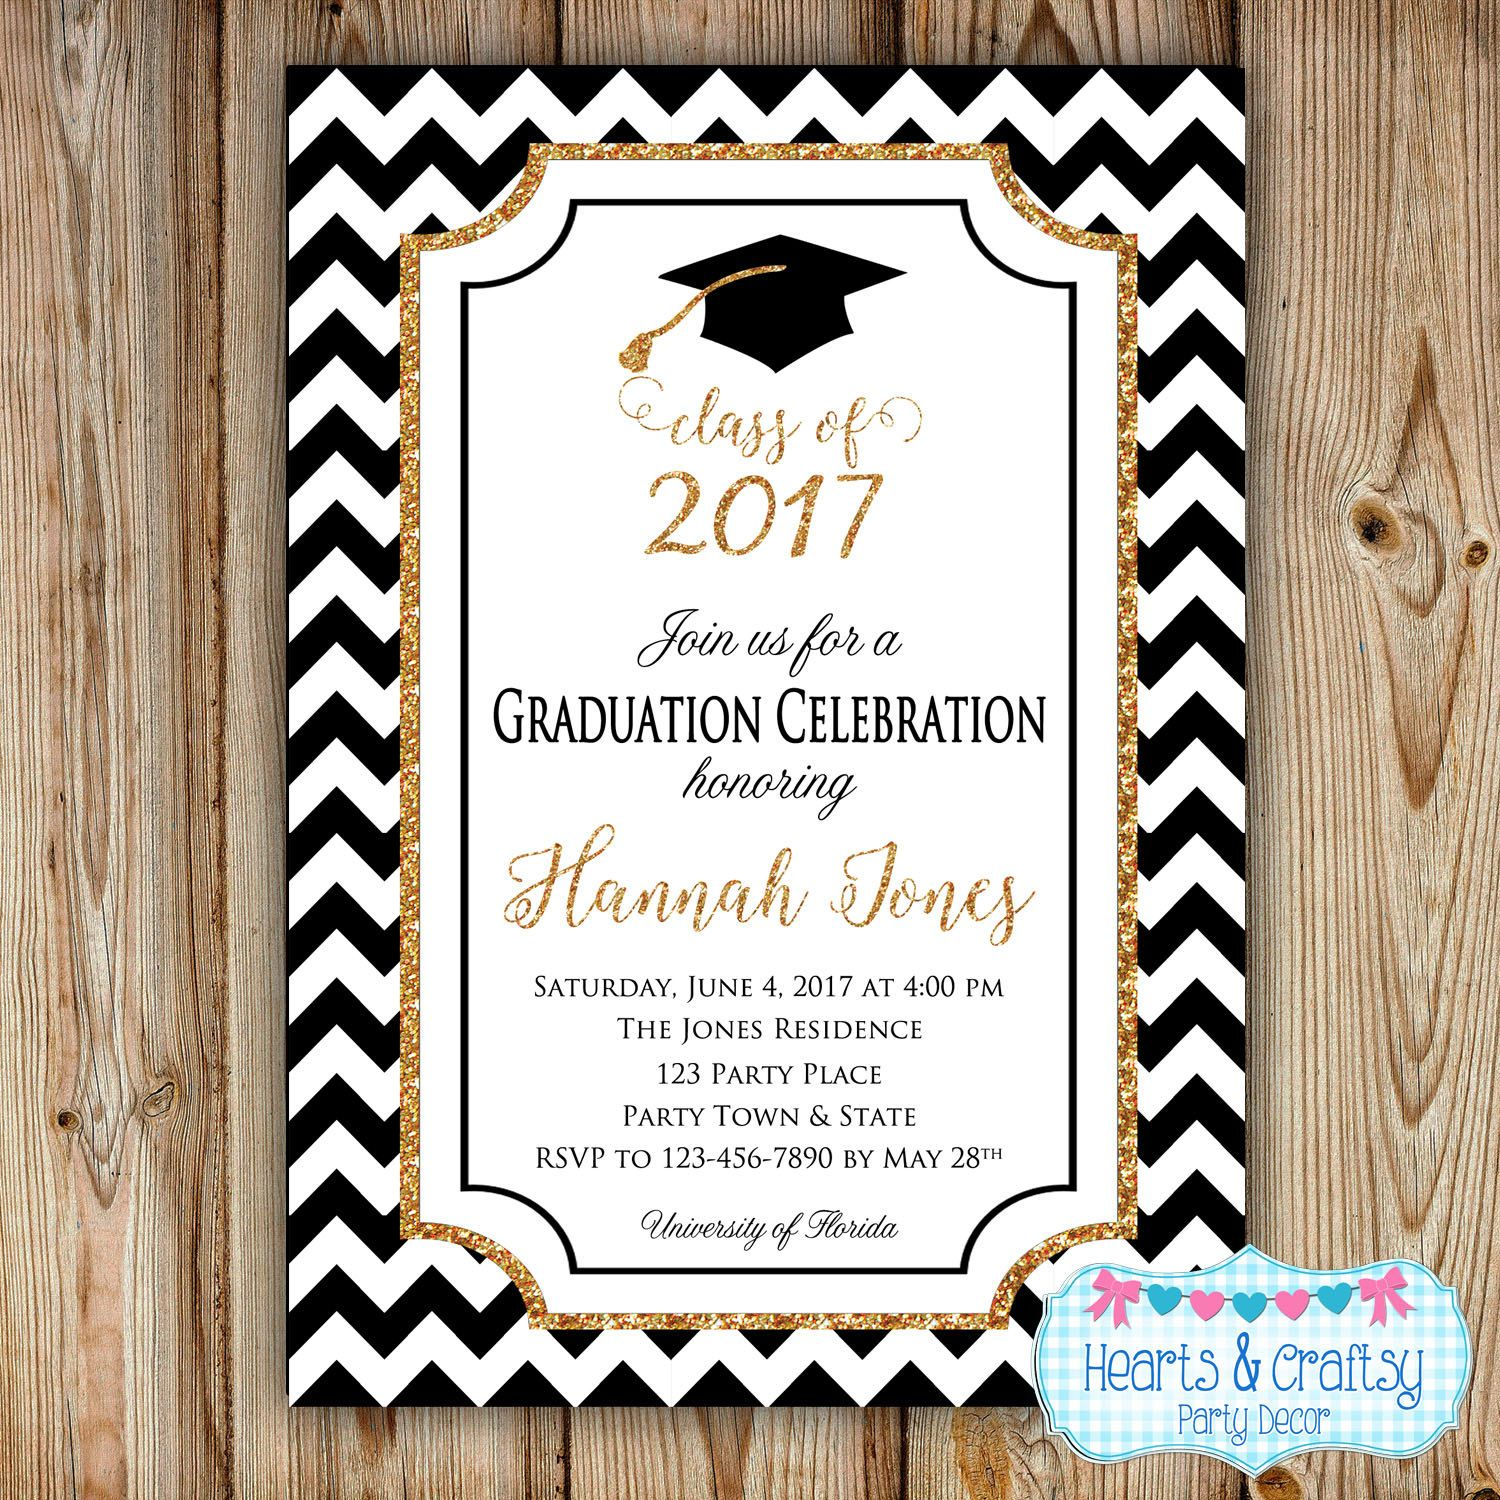 designs black graduation name cards well full size avery also create ...